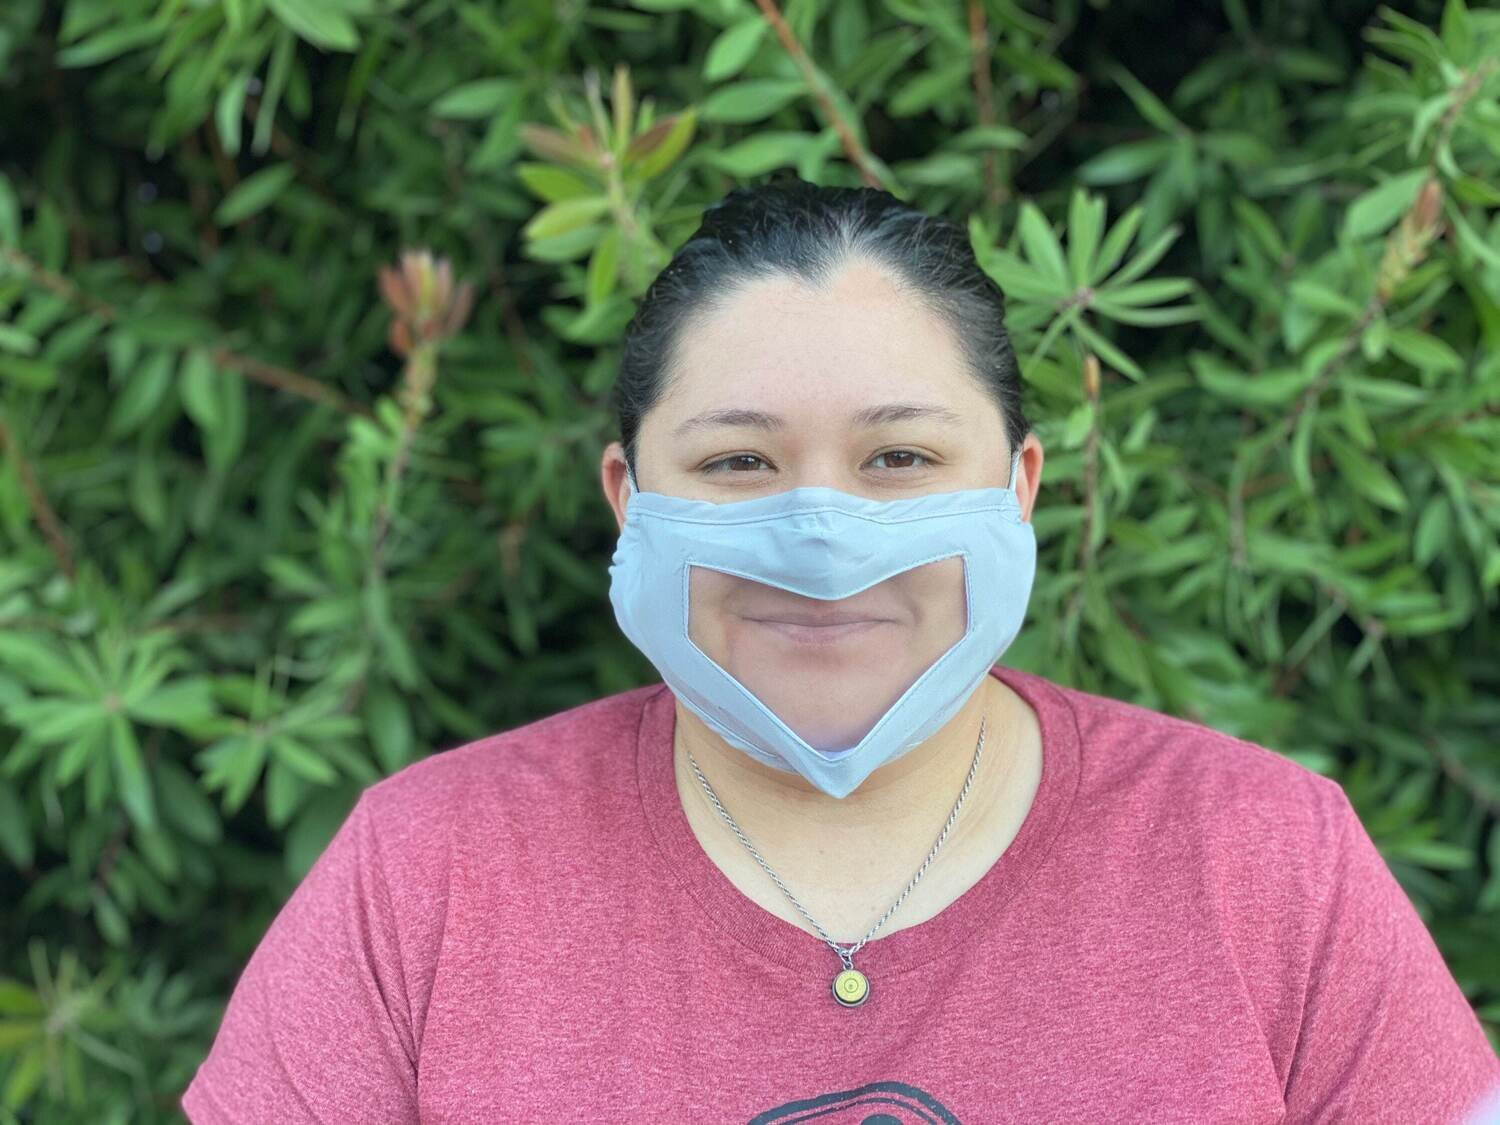 Clear adjustable face mask - Adult or Child Sized